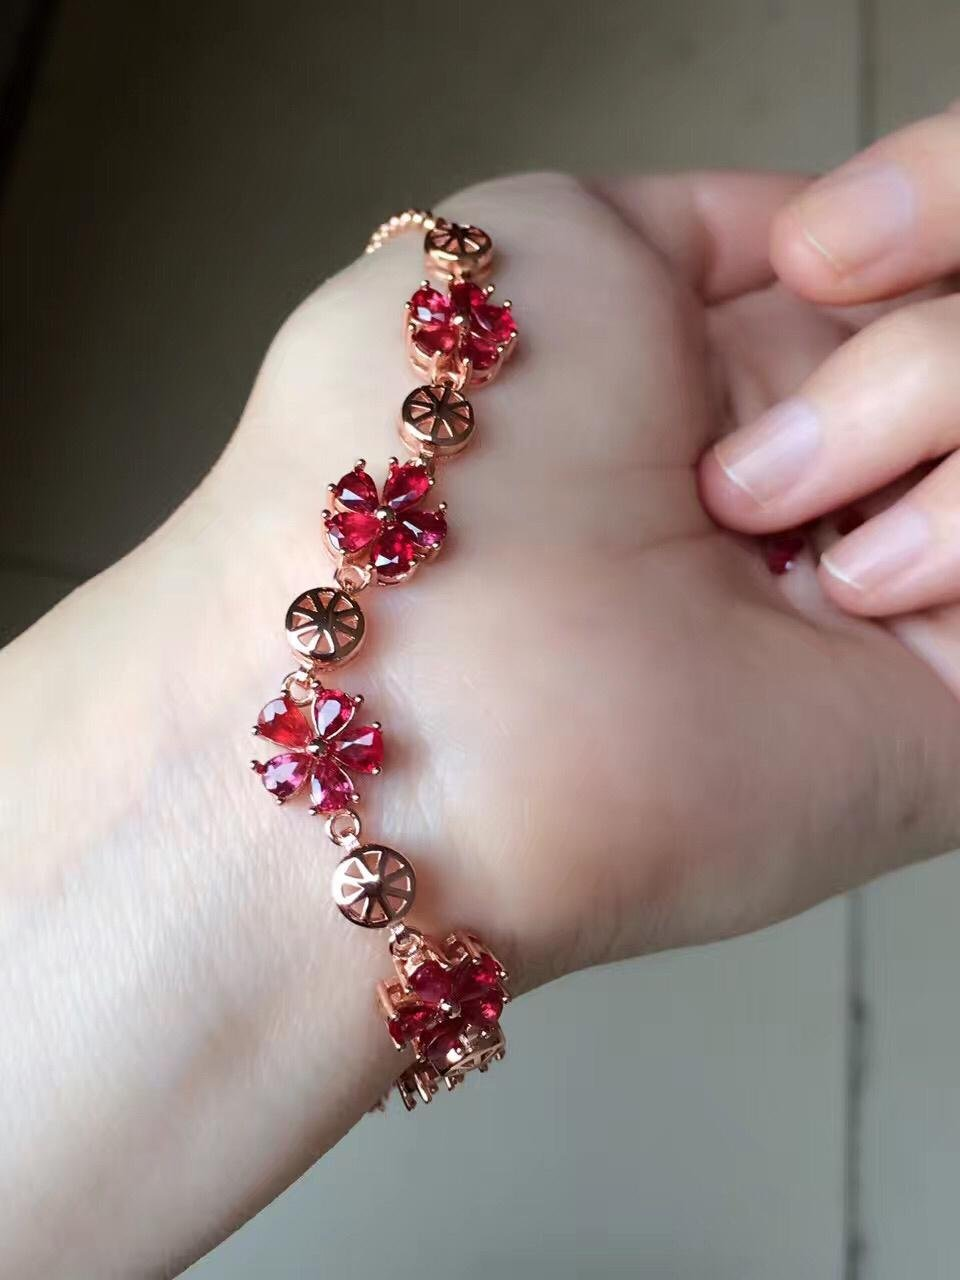 Promotion Qi Xuan_Free Shipping Natural Red Stones Elegant Bracelets_S925 Solid Fashion Bracelets_Manufacturer Directly Sales